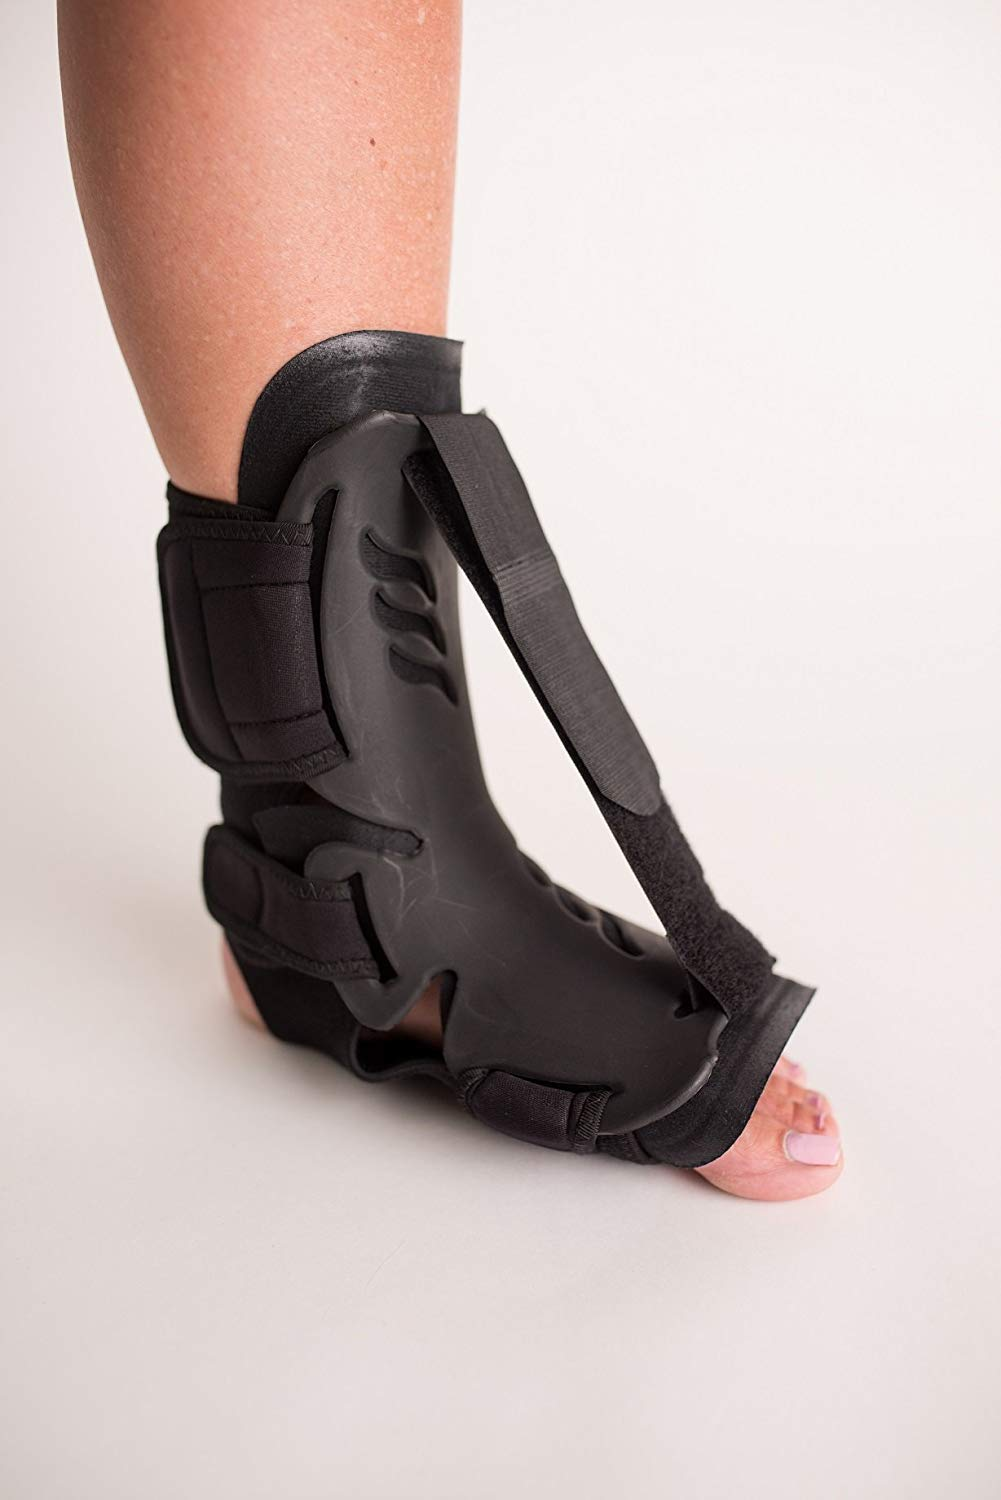 The Orthopedic Guys Dorsal Night Splint for Effective Pain Relief From Plantar Fasciitis, Heel, Arch Foot, and Achilles Tendonitis. Offers Sleep Support, Slip Resistant, Breathable Fabric (L/XL)